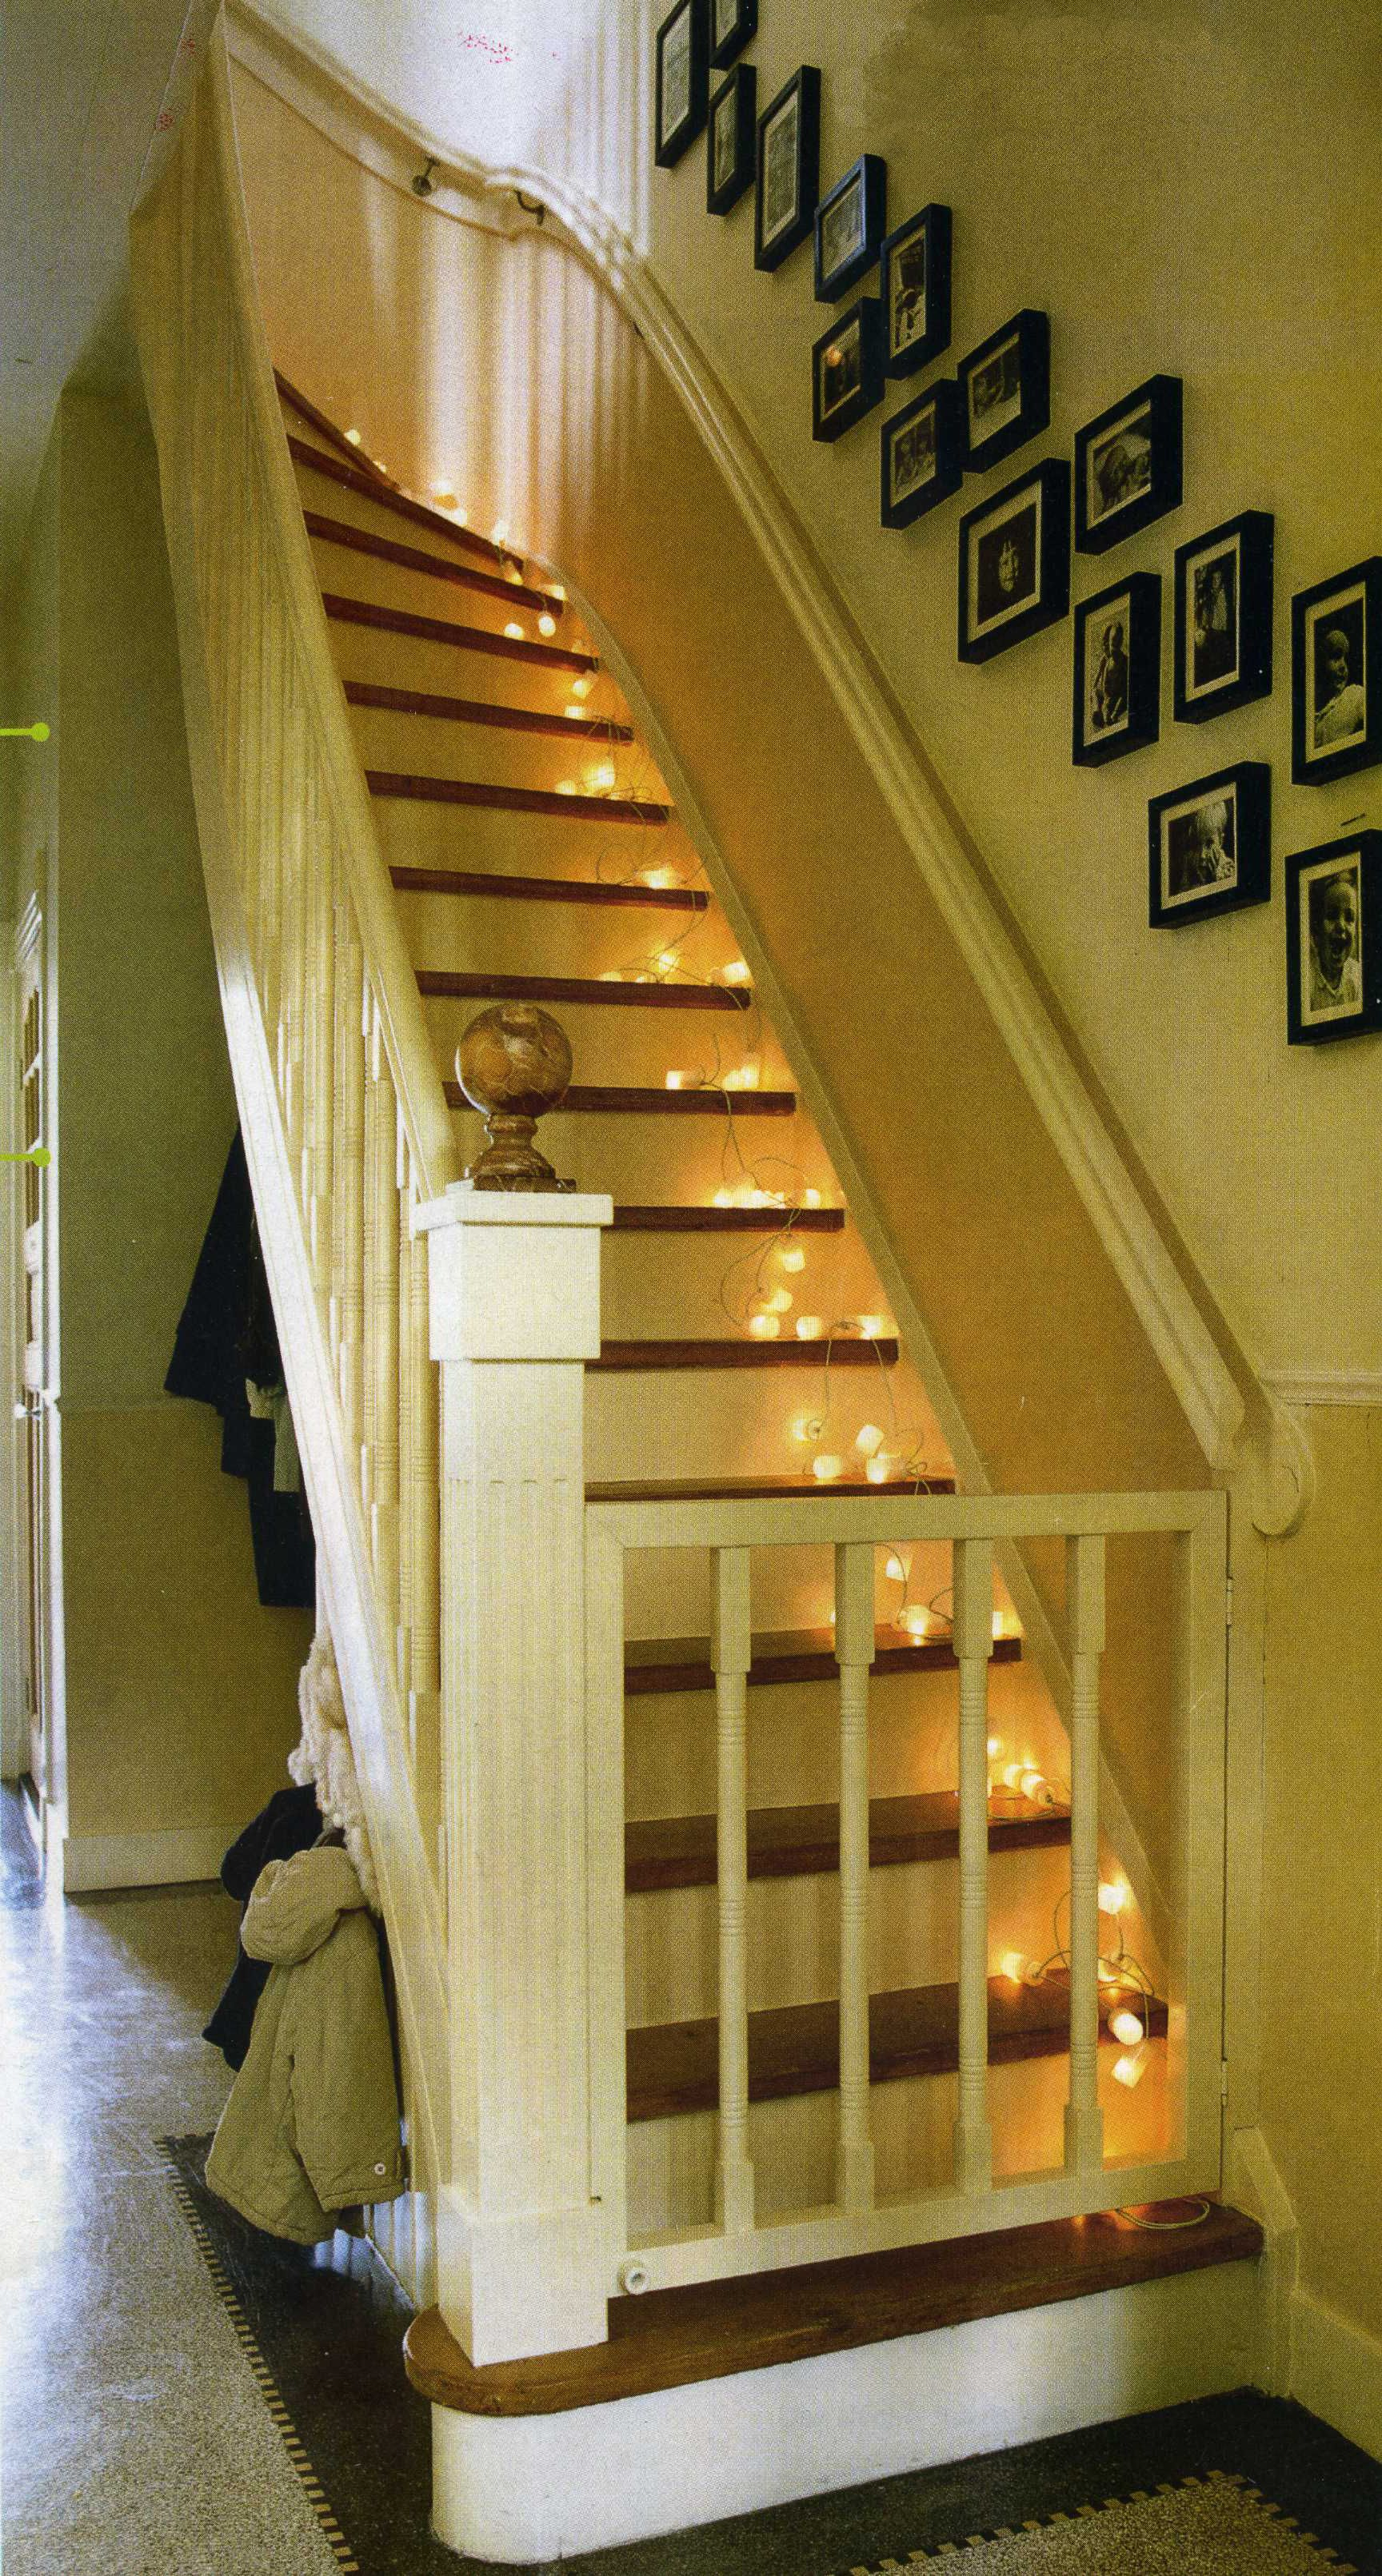 Stair Gate Between Kitchen And Utility. We Coud Make This Using Some Stair  Spindals And Wood